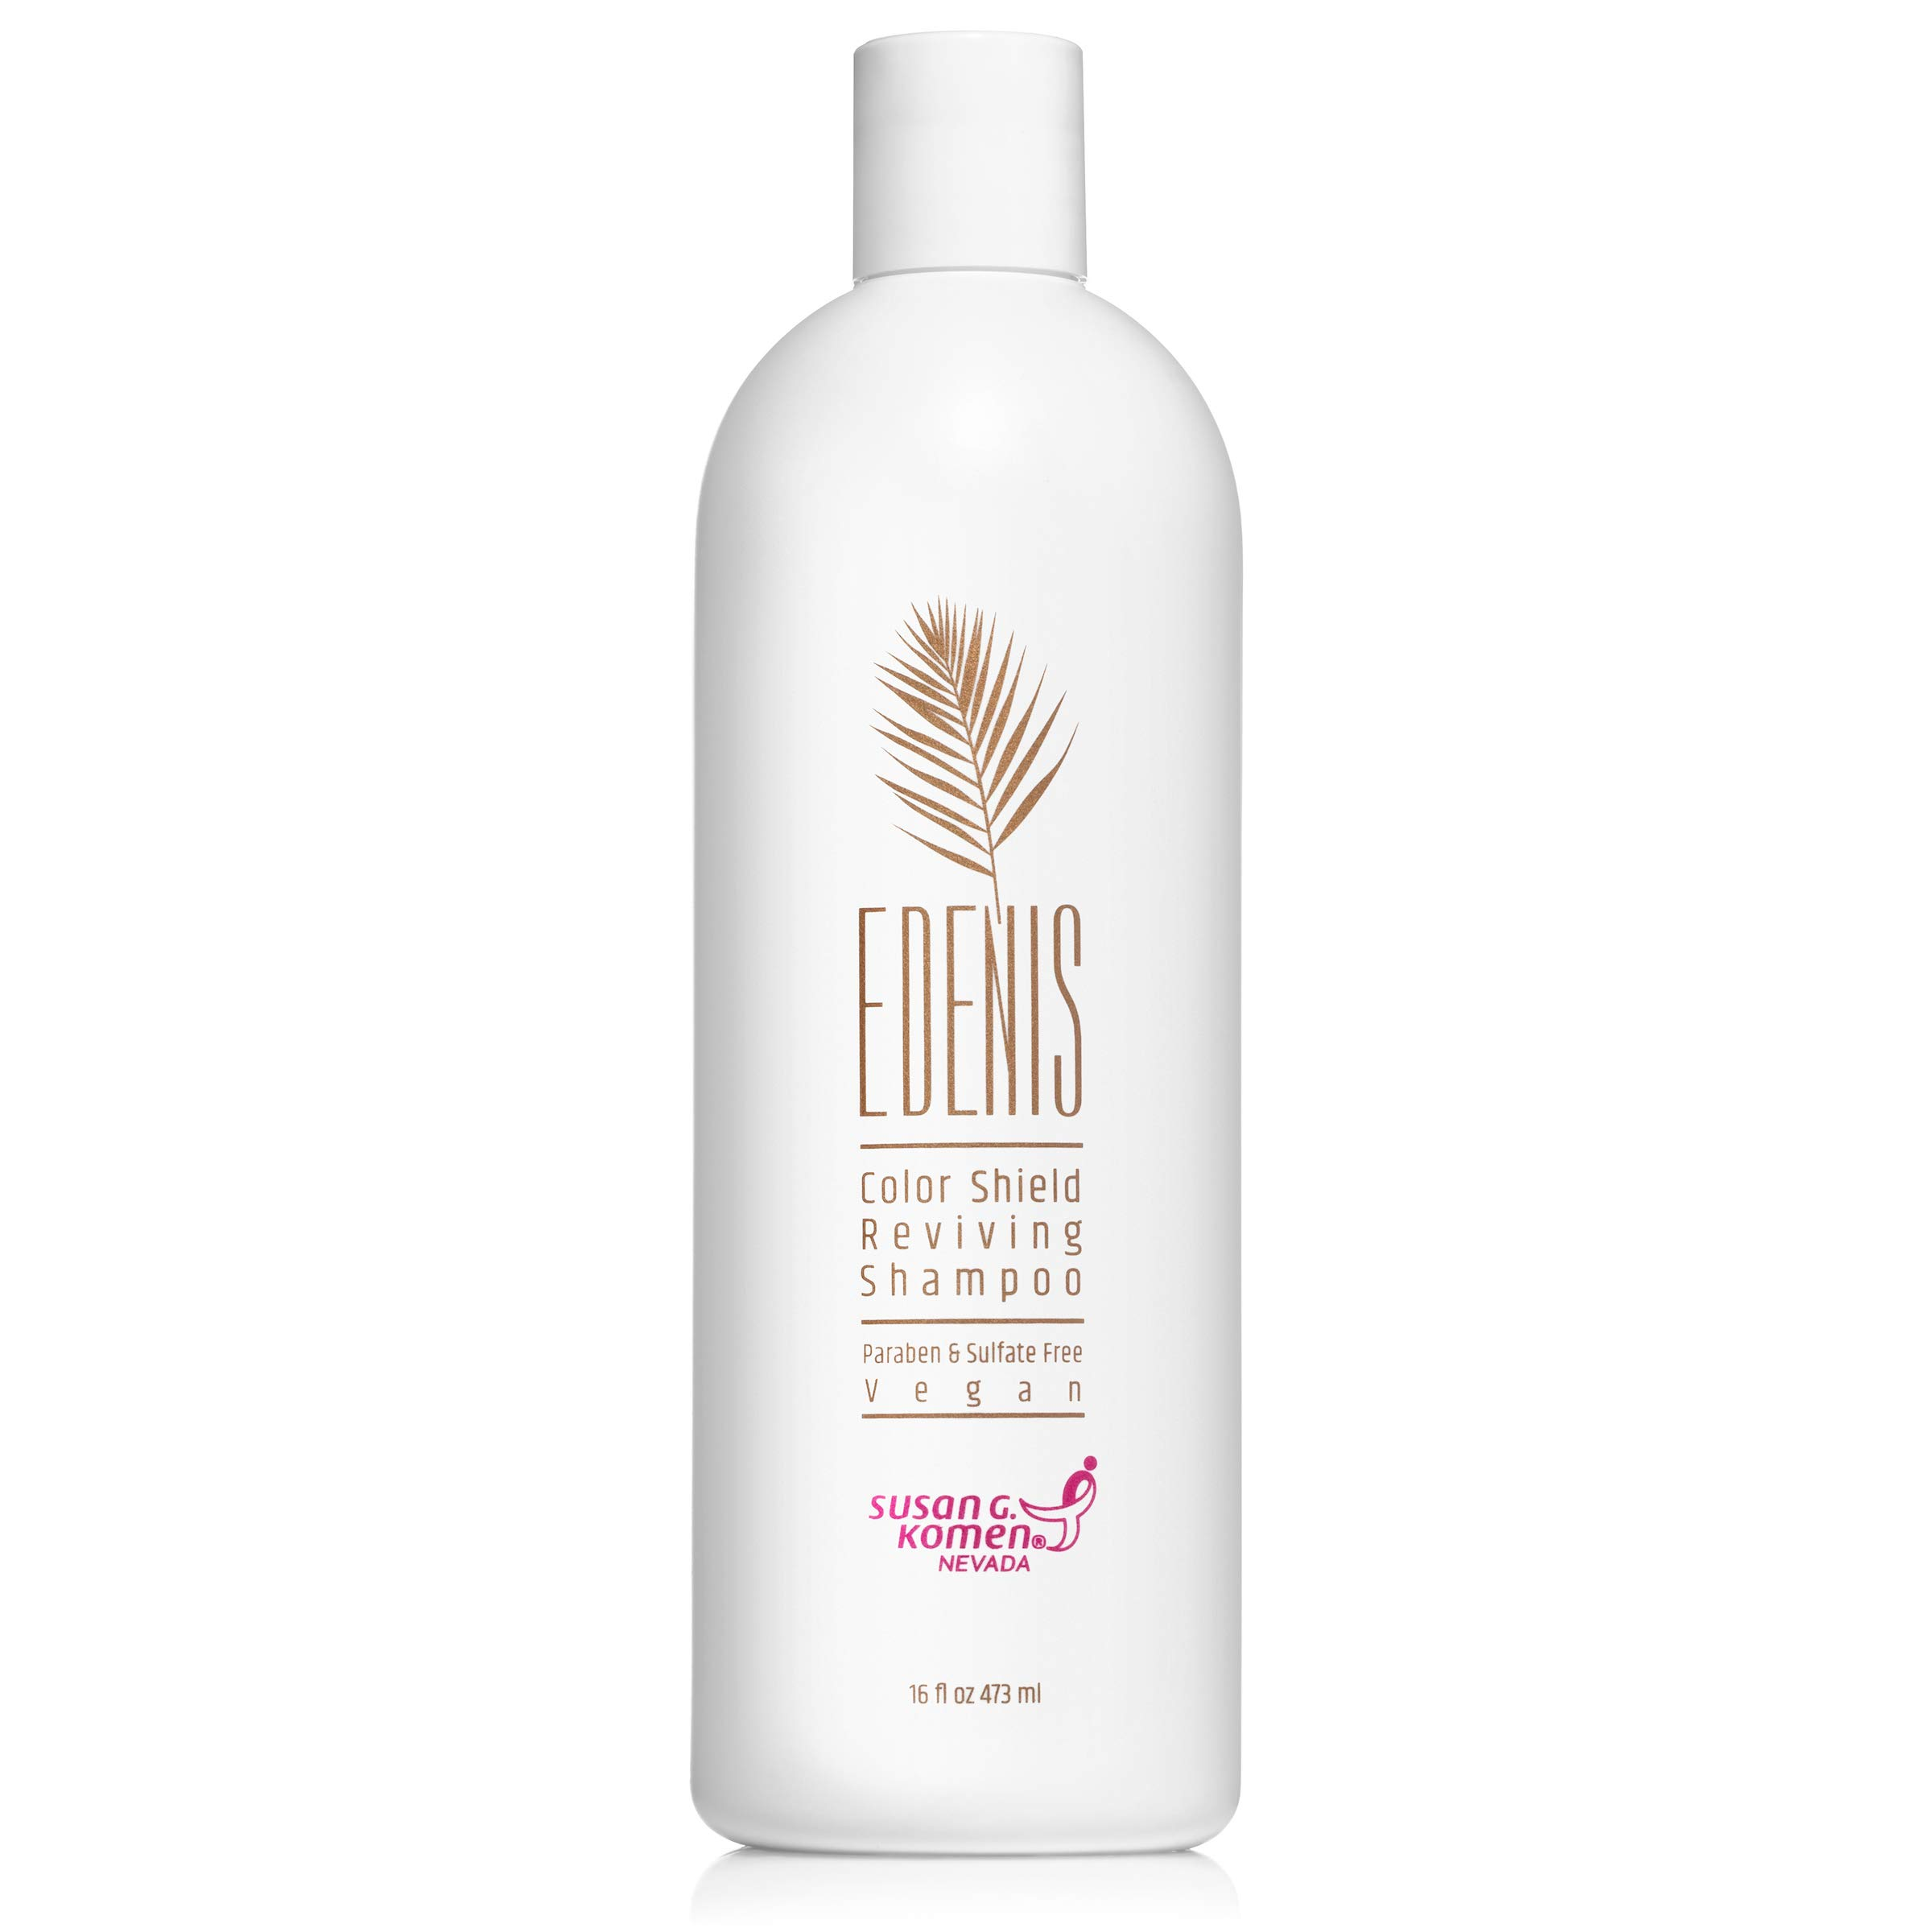 EDENIS Professional Sulfate Free Reviving Shampoo | Great for Color Treated Hair | Vegan, Natural Extracts to Revive & Hydrate Dry or Damaged Hair (8 Oz)